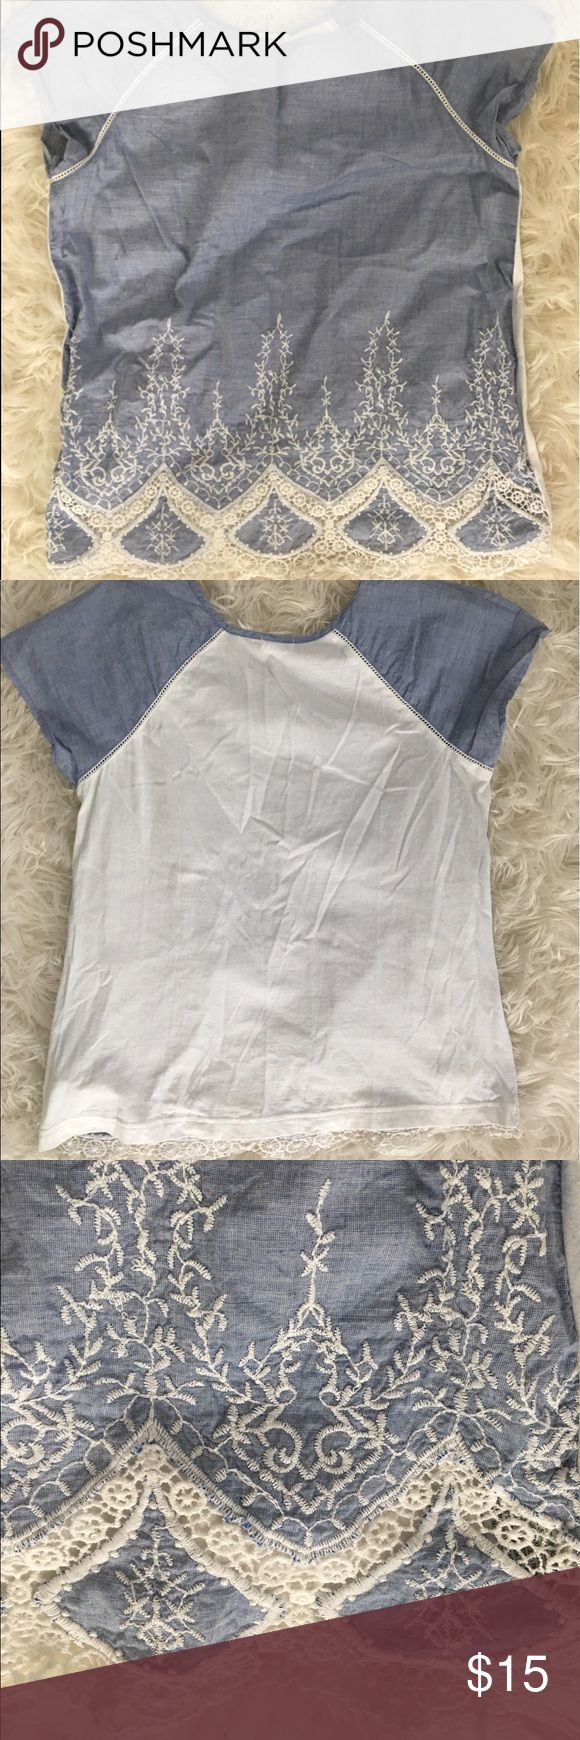 Super Cite Denim Lace Top! Super comfortable and extremely adorable Denim top! Back of the shirt is cotton which allows for good amount of stretch! Worn only twice as seen in the pictures above! Great to dress up or keep casual! oysho Tops Blouses